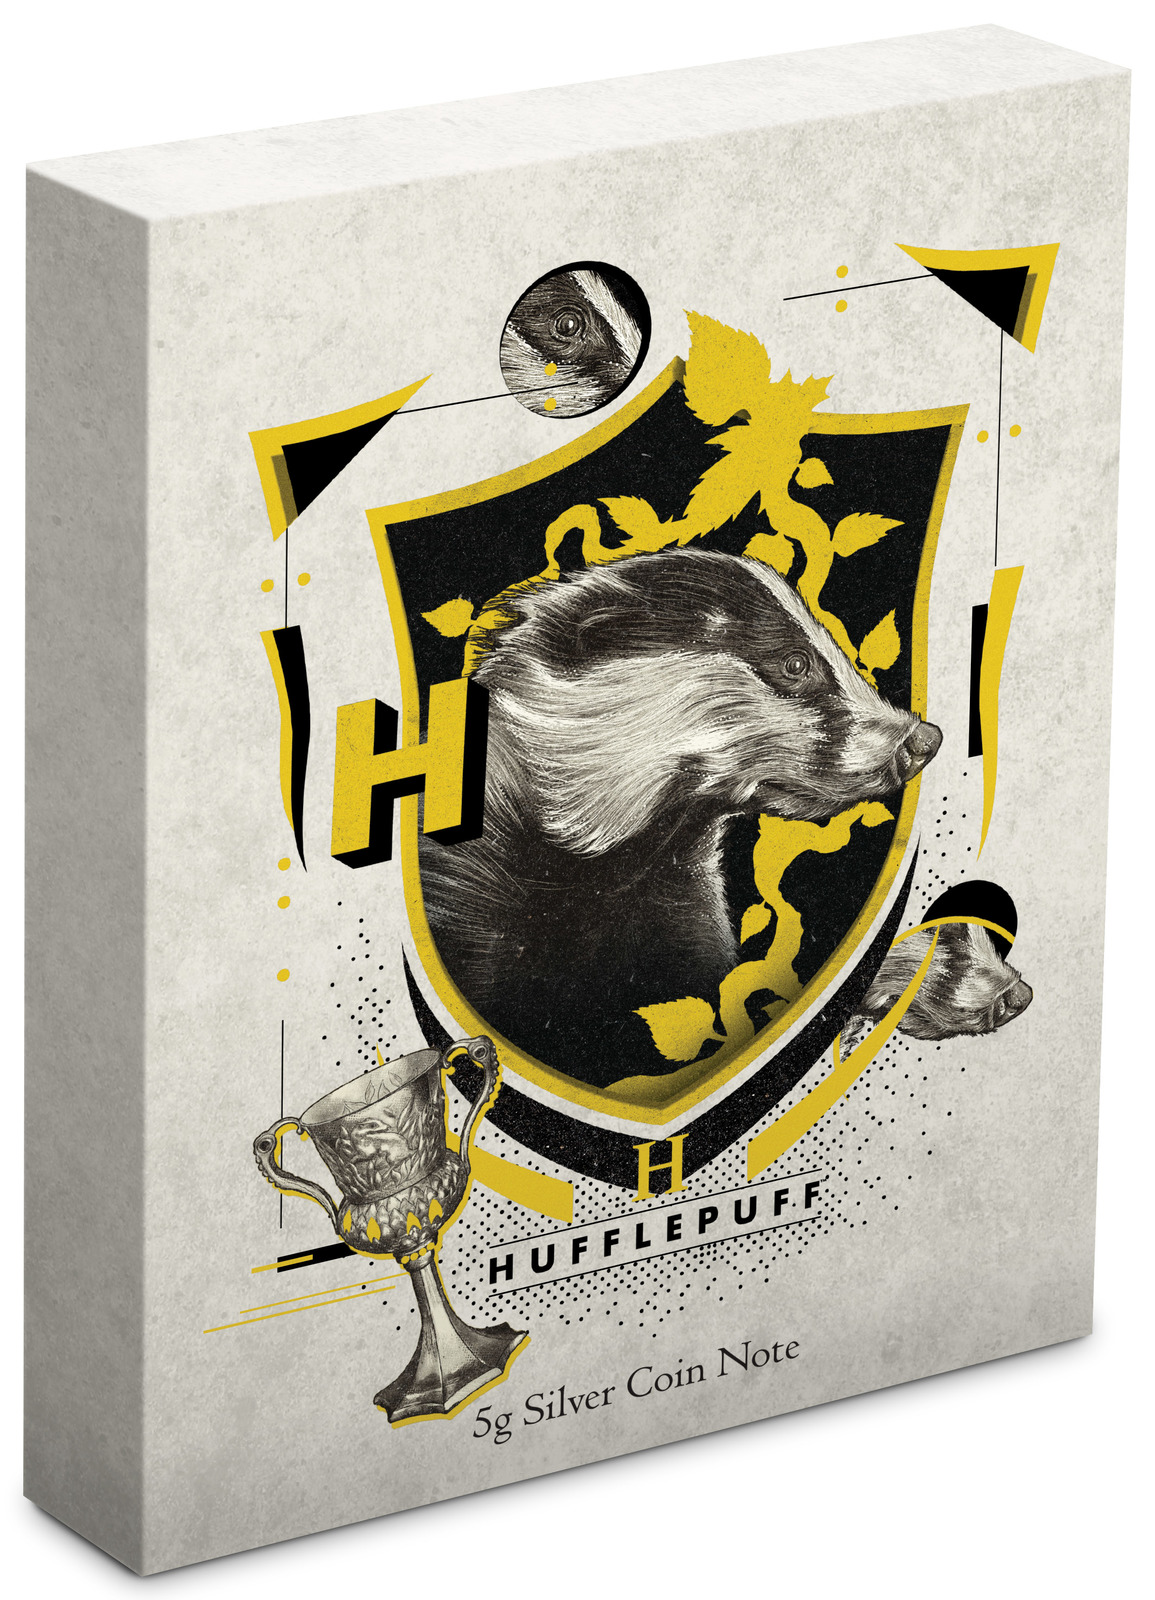 NZ Mint: Harry Potter - Silver Coin Note - Hufflepuff 2020 (5g Silver) image